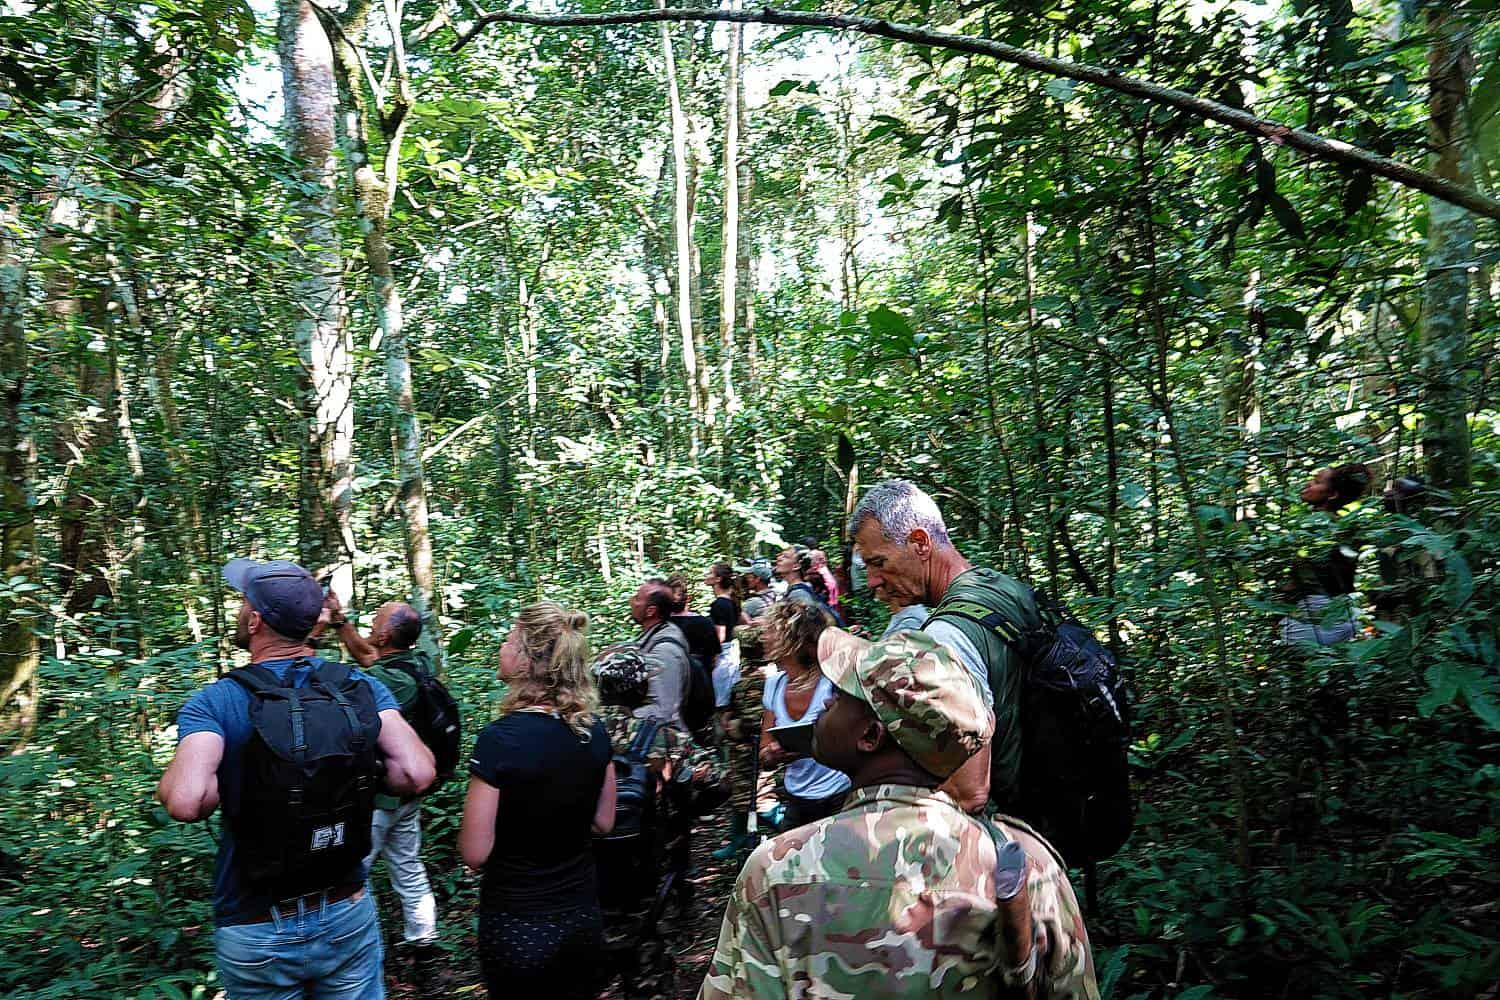 How Do You Get A Permit for Viewing The Chimpanzees In Uganda